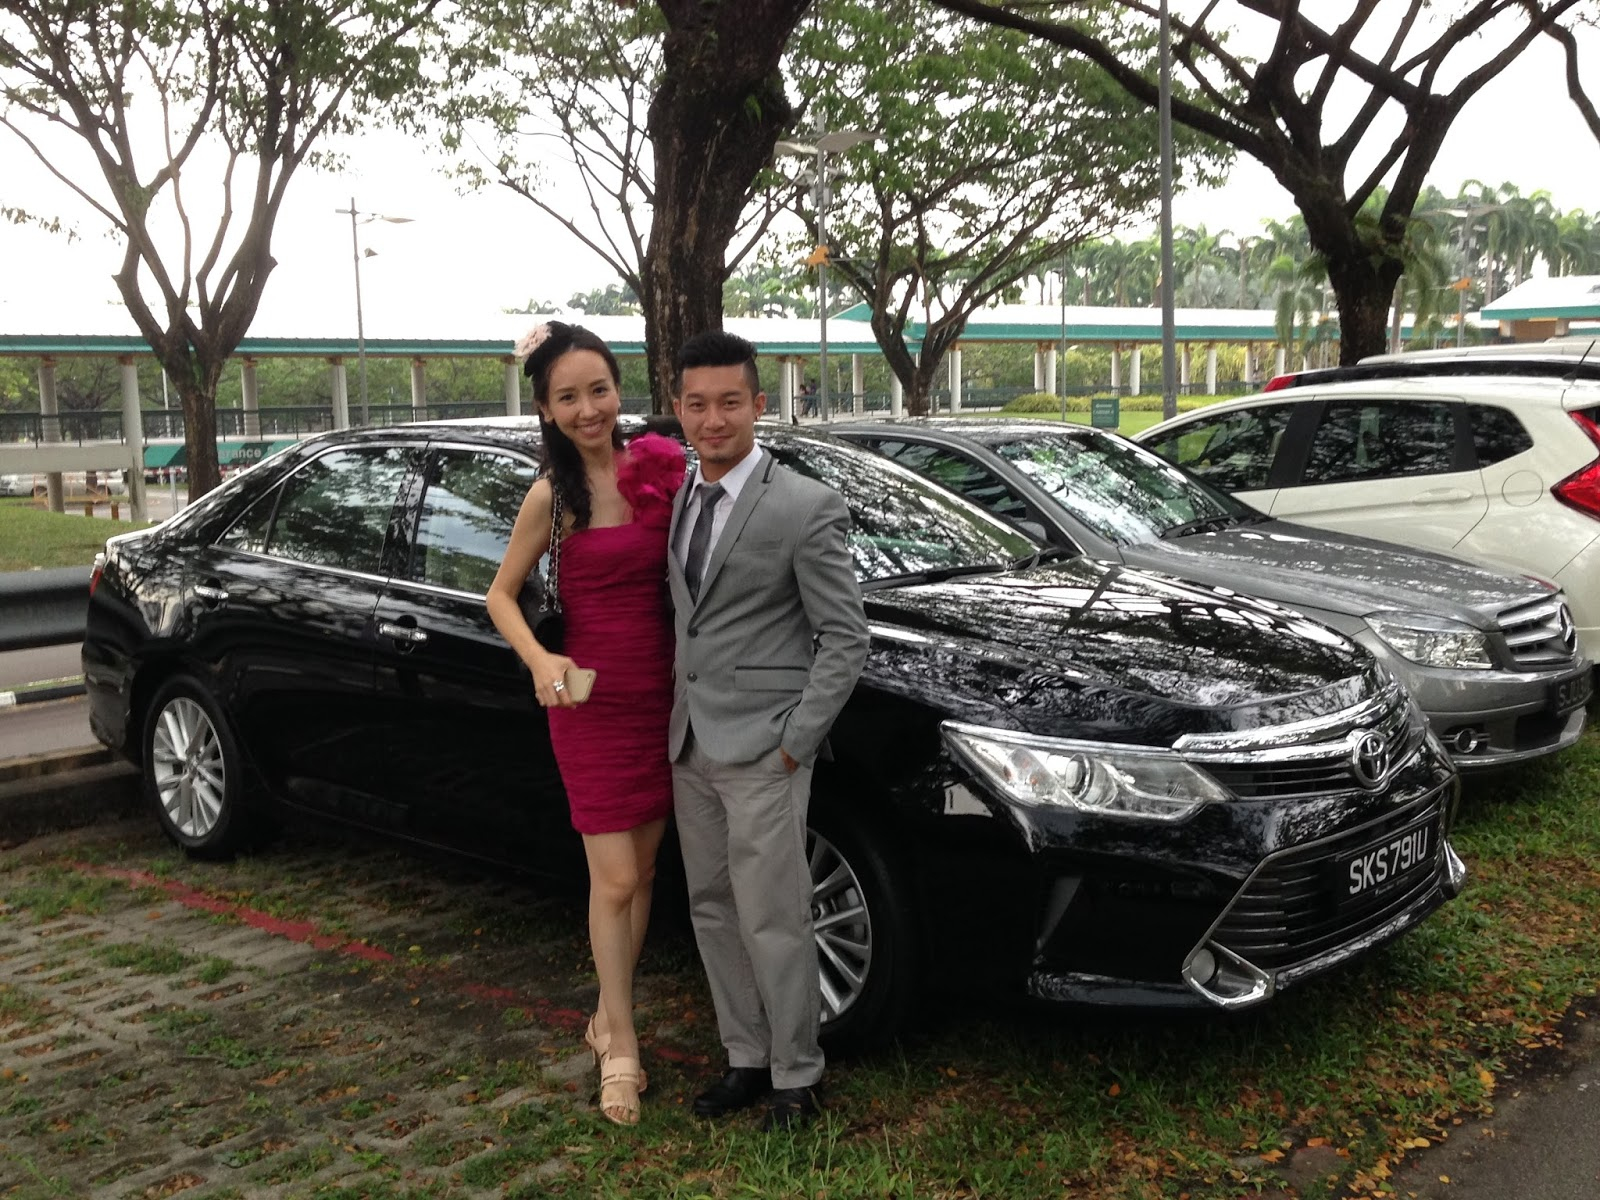 All New Camry Singapore Harga Yaris Trd Sportivo Shaun Owyeong 2015 Toyota 2 5 A Class Leading Executive Sedan Emirates Derby The Racecourse Last Sunday With